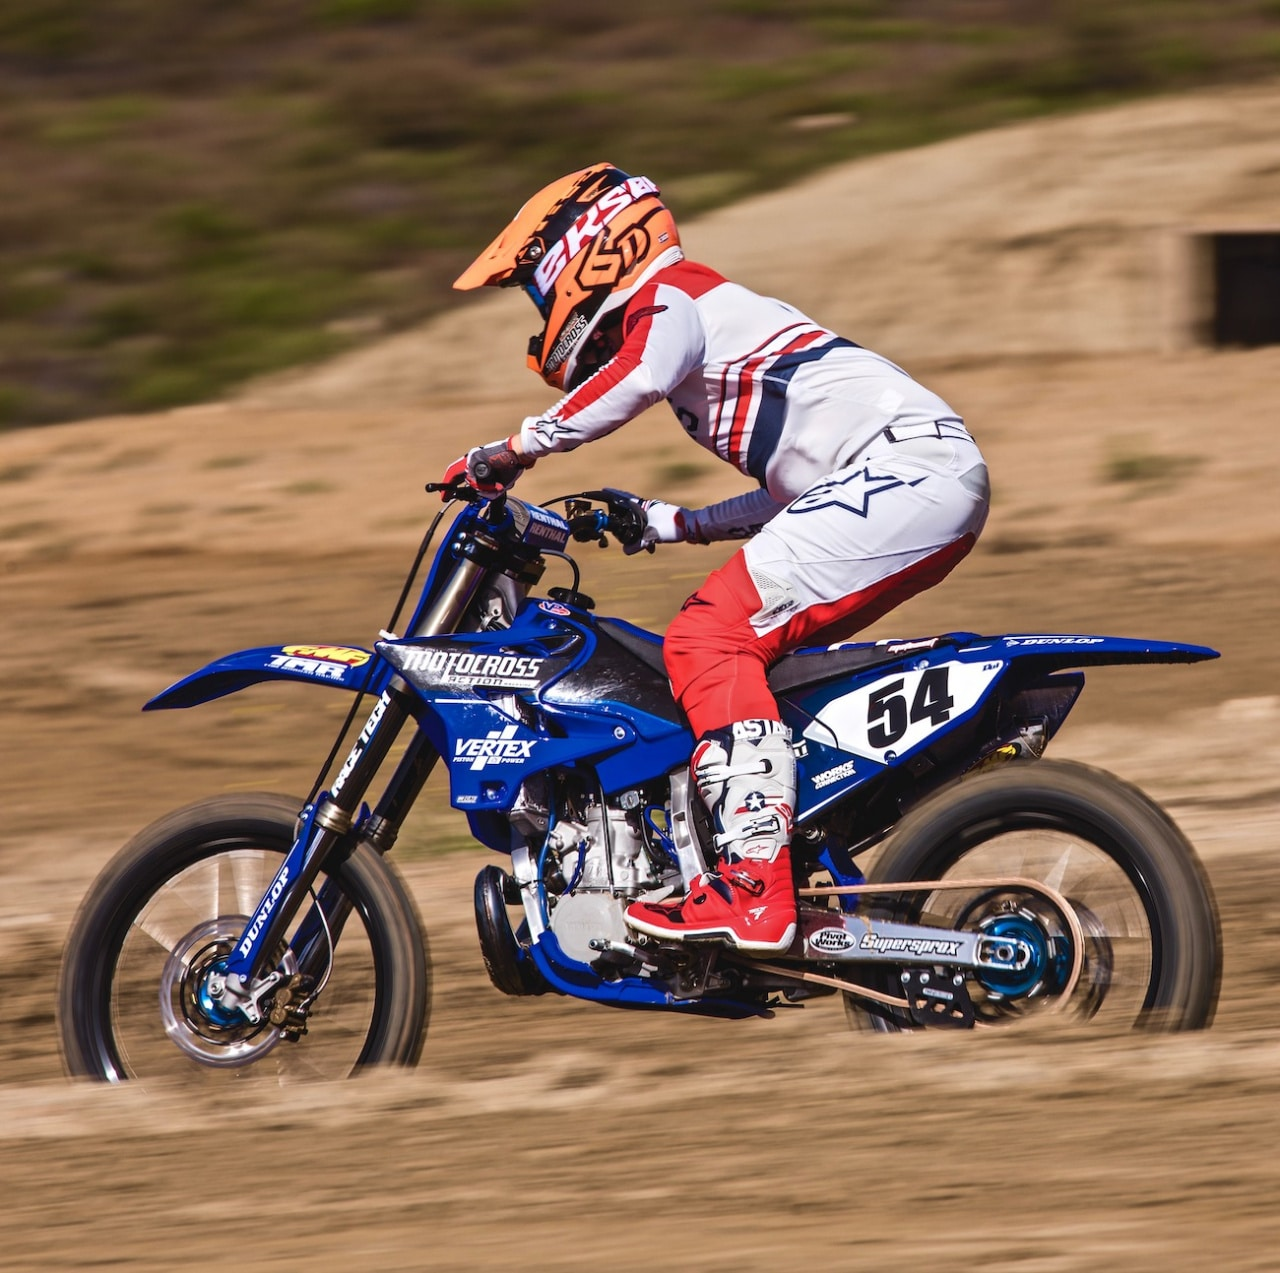 MXA RESTORES A 2005 YAMAHA YZ250 BACK TO FIGHTING FITNESS